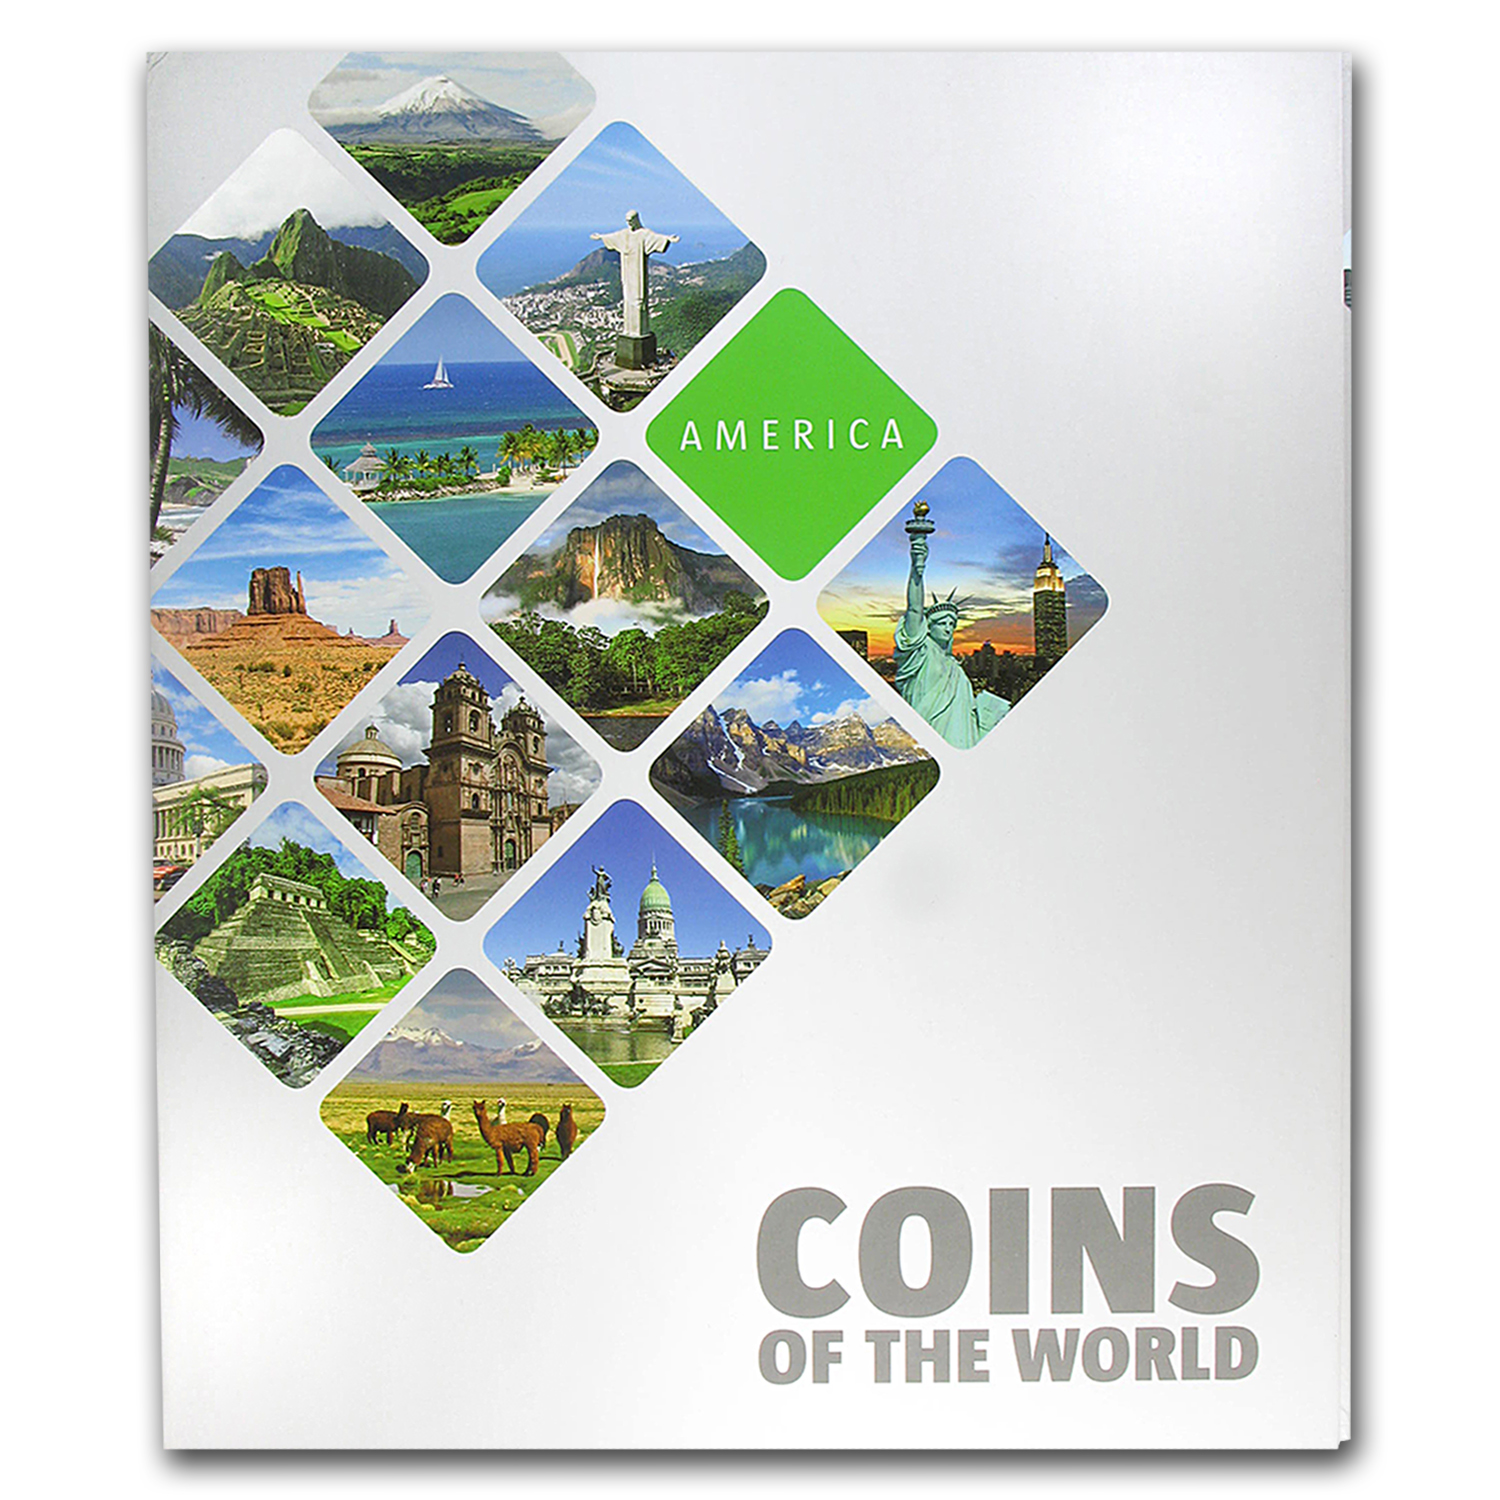 Coins of the World - America (36 coins)